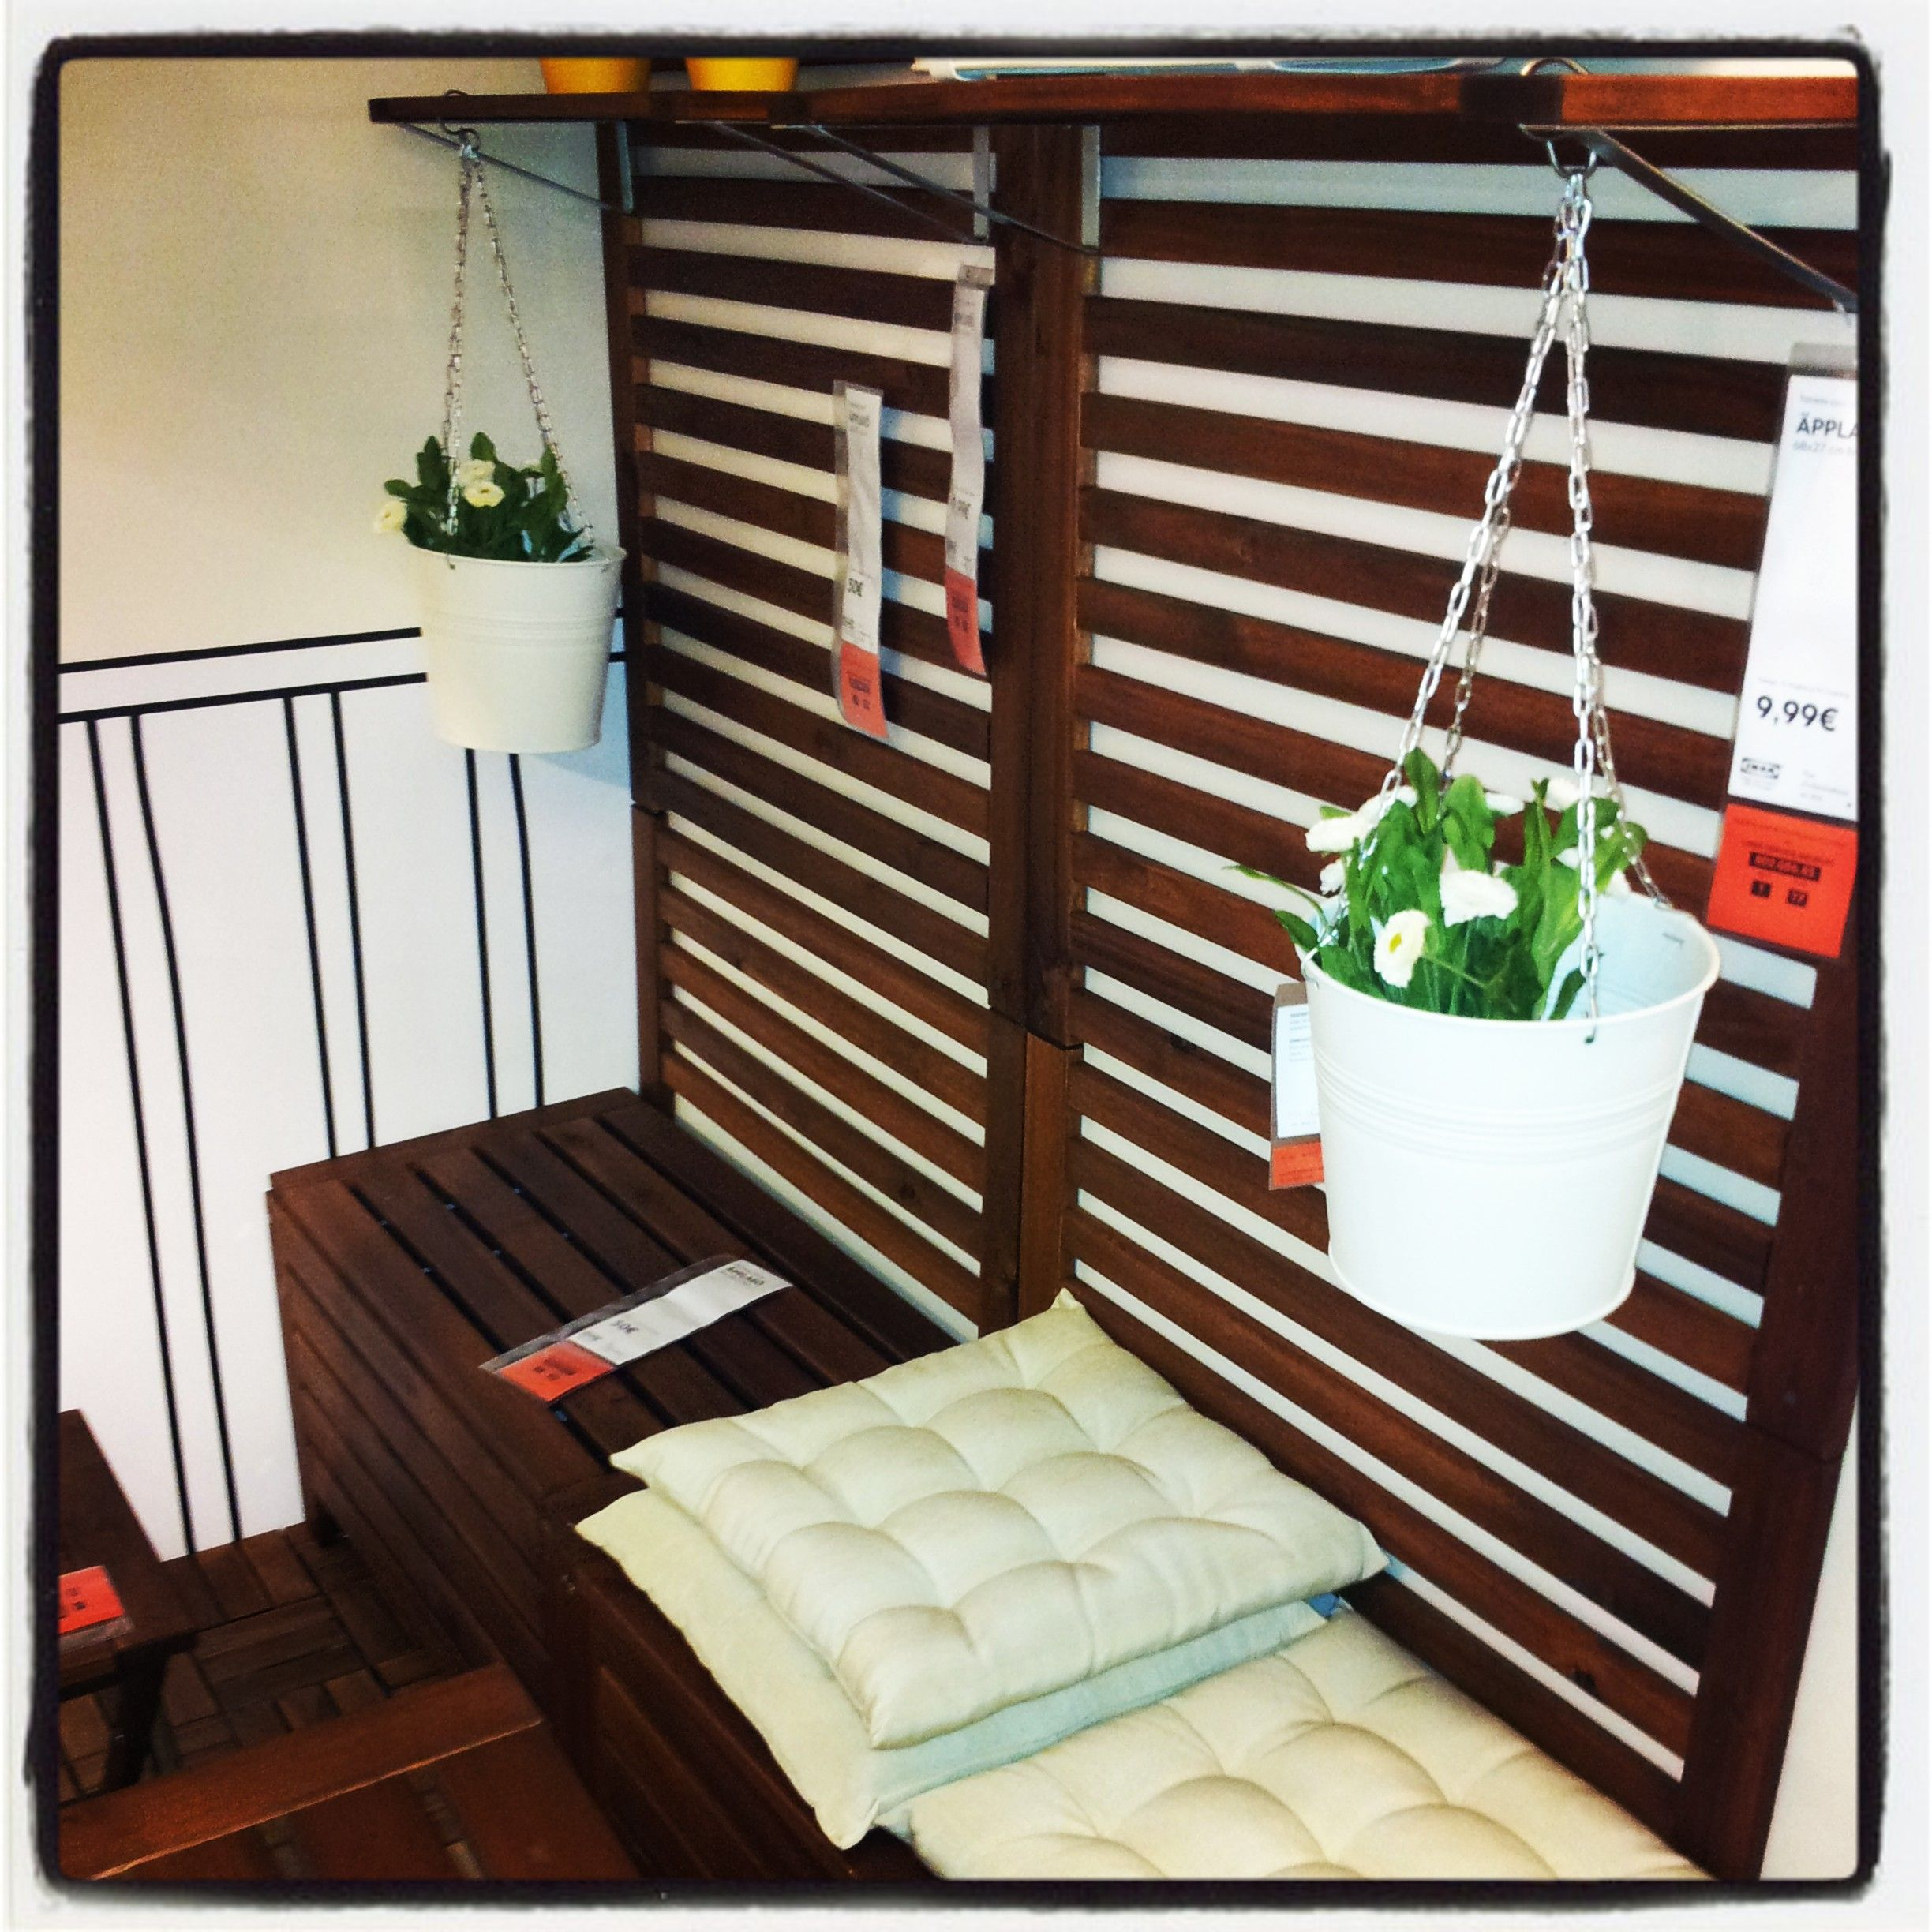 pour mettre sur mon balcon et gagner de la place ikea garden pinterest shelves on the. Black Bedroom Furniture Sets. Home Design Ideas